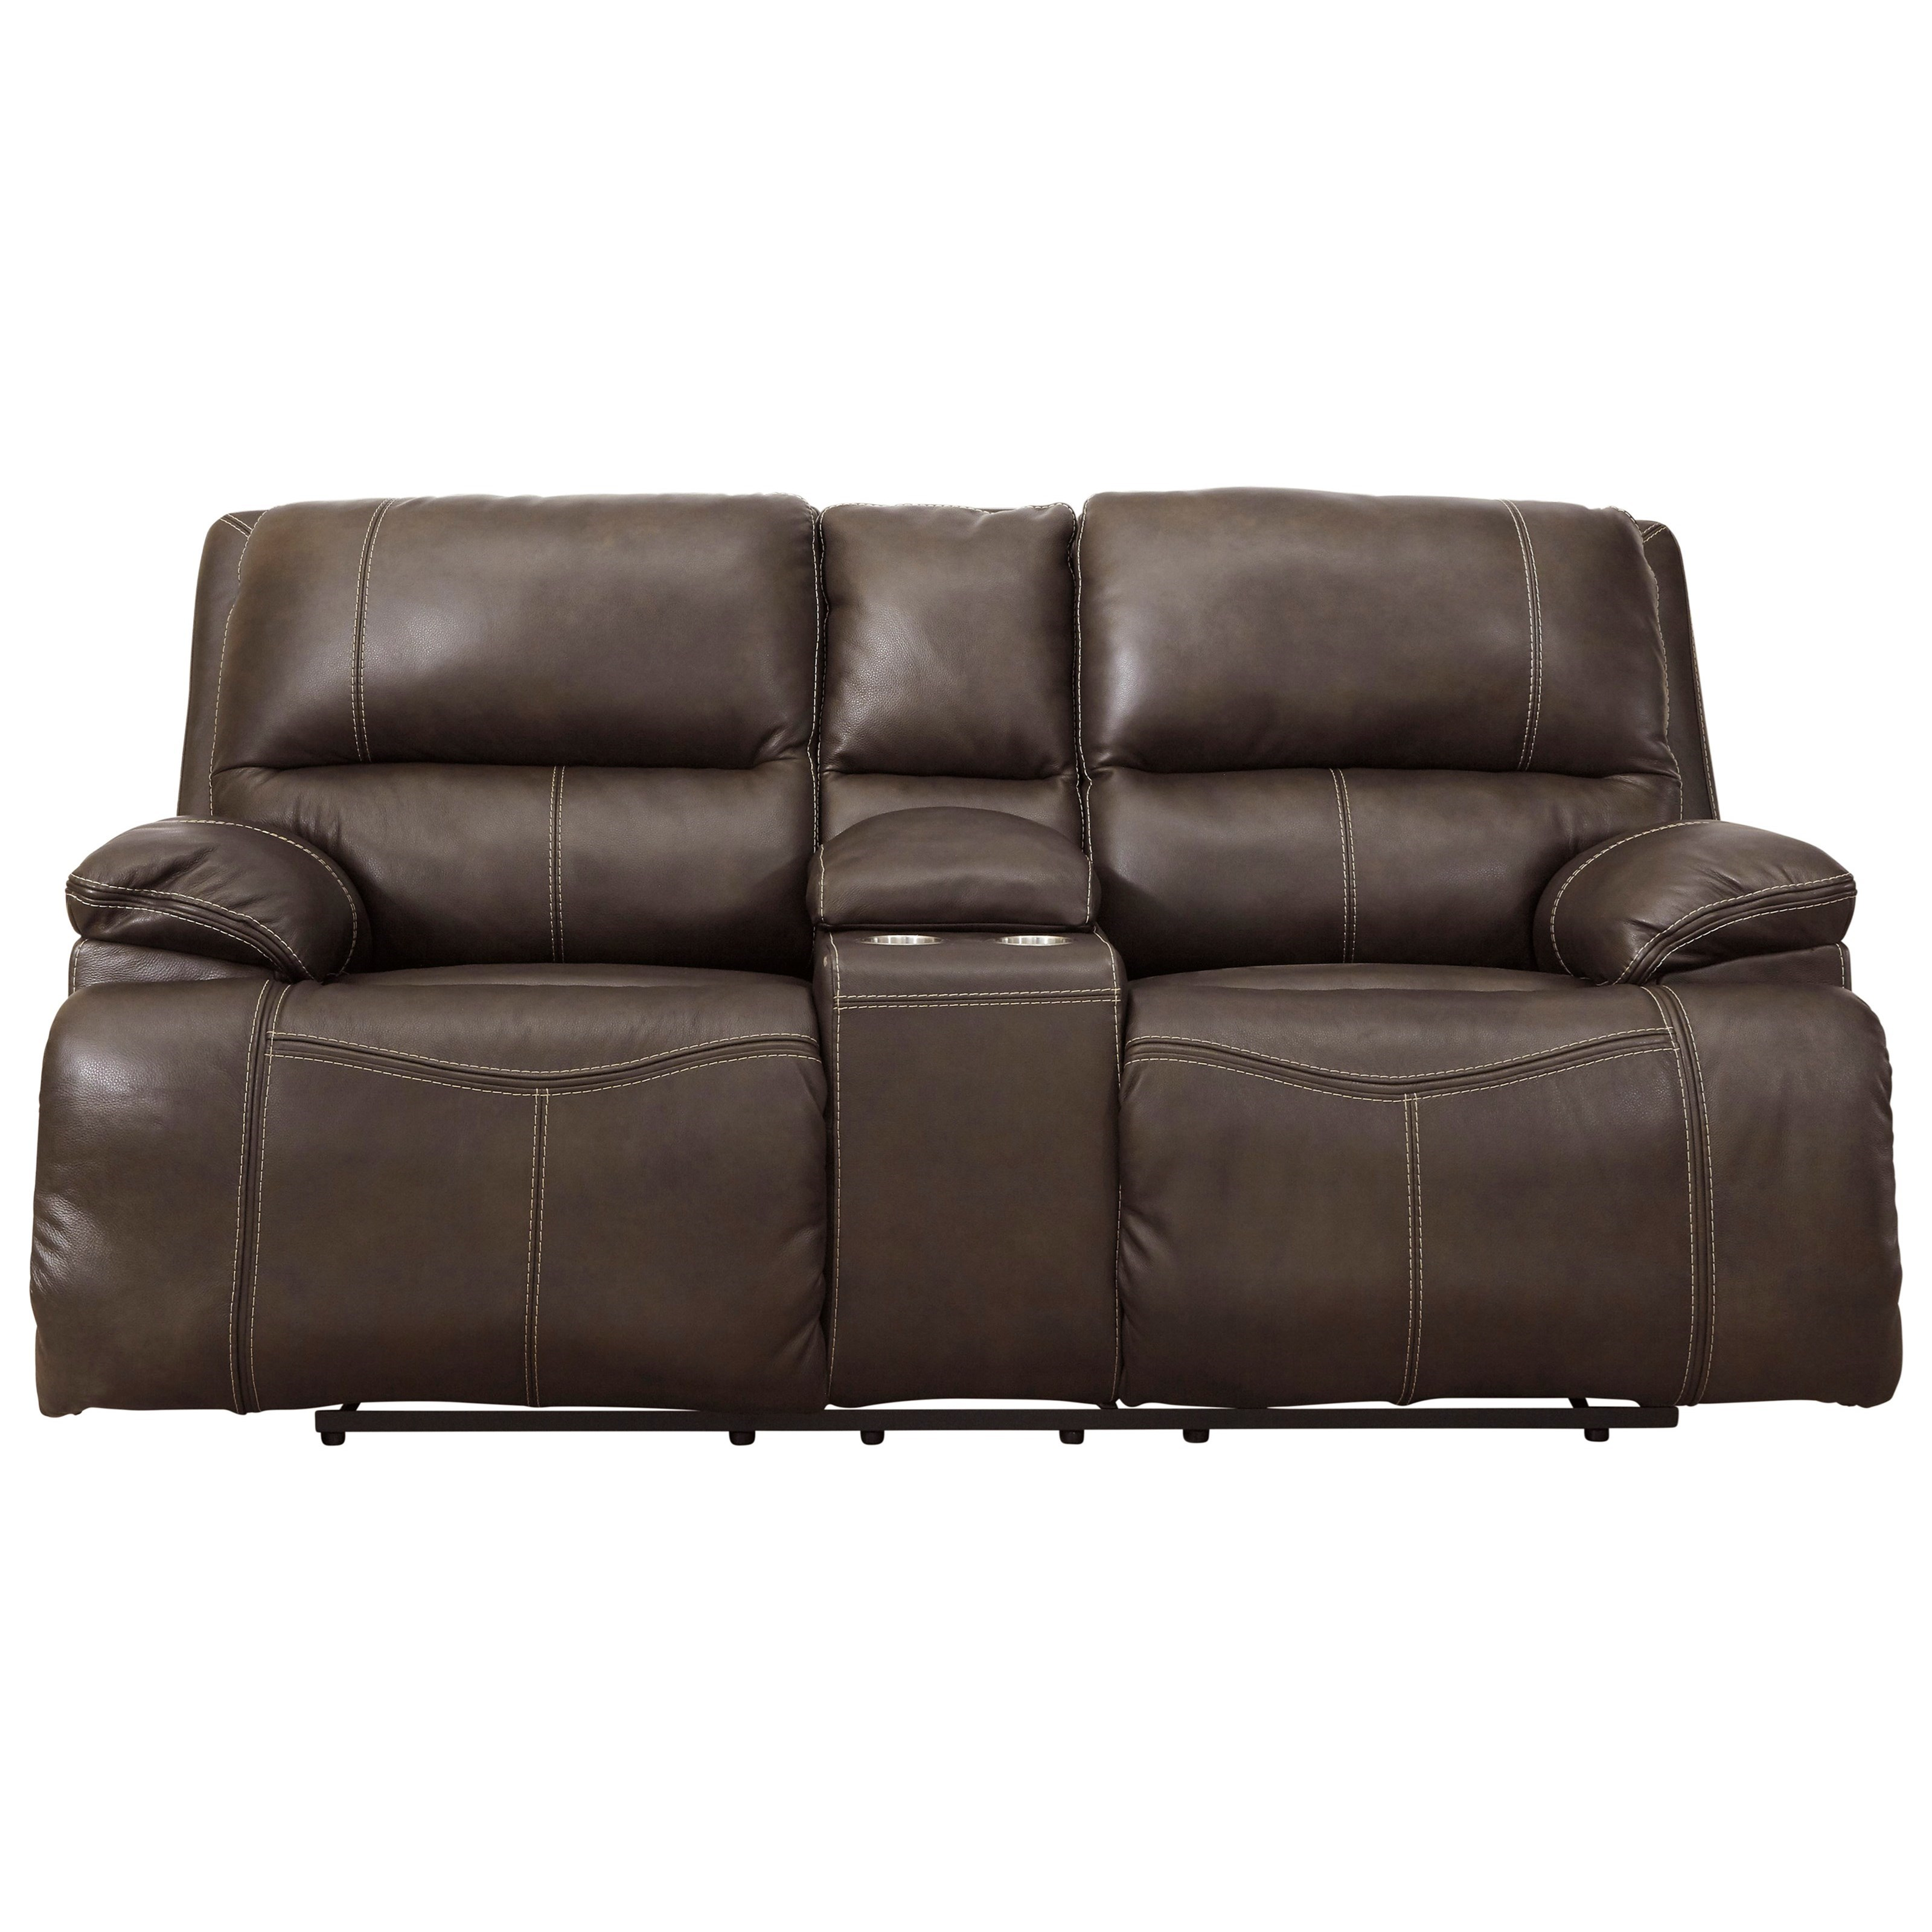 Ricmen Power Reclining Loveseat w/ Adj. Headrests by Signature Design by Ashley at Beck's Furniture